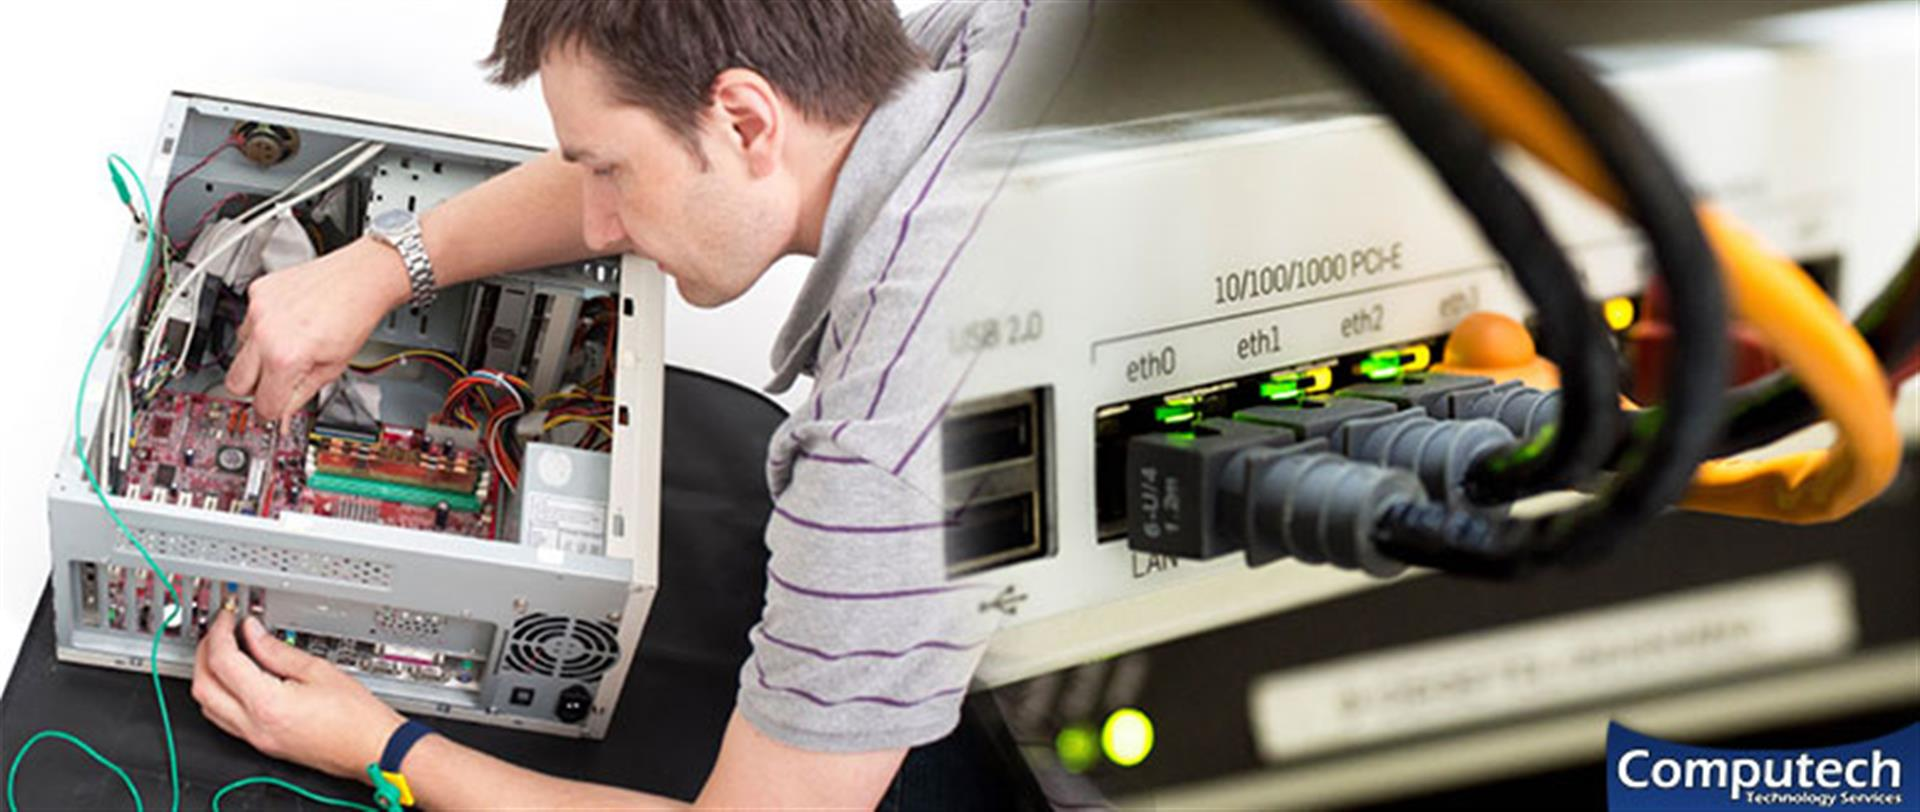 Humboldt Tennessee Onsite Computer PC & Printer Repair, Networks, Voice & Data Cabling Services